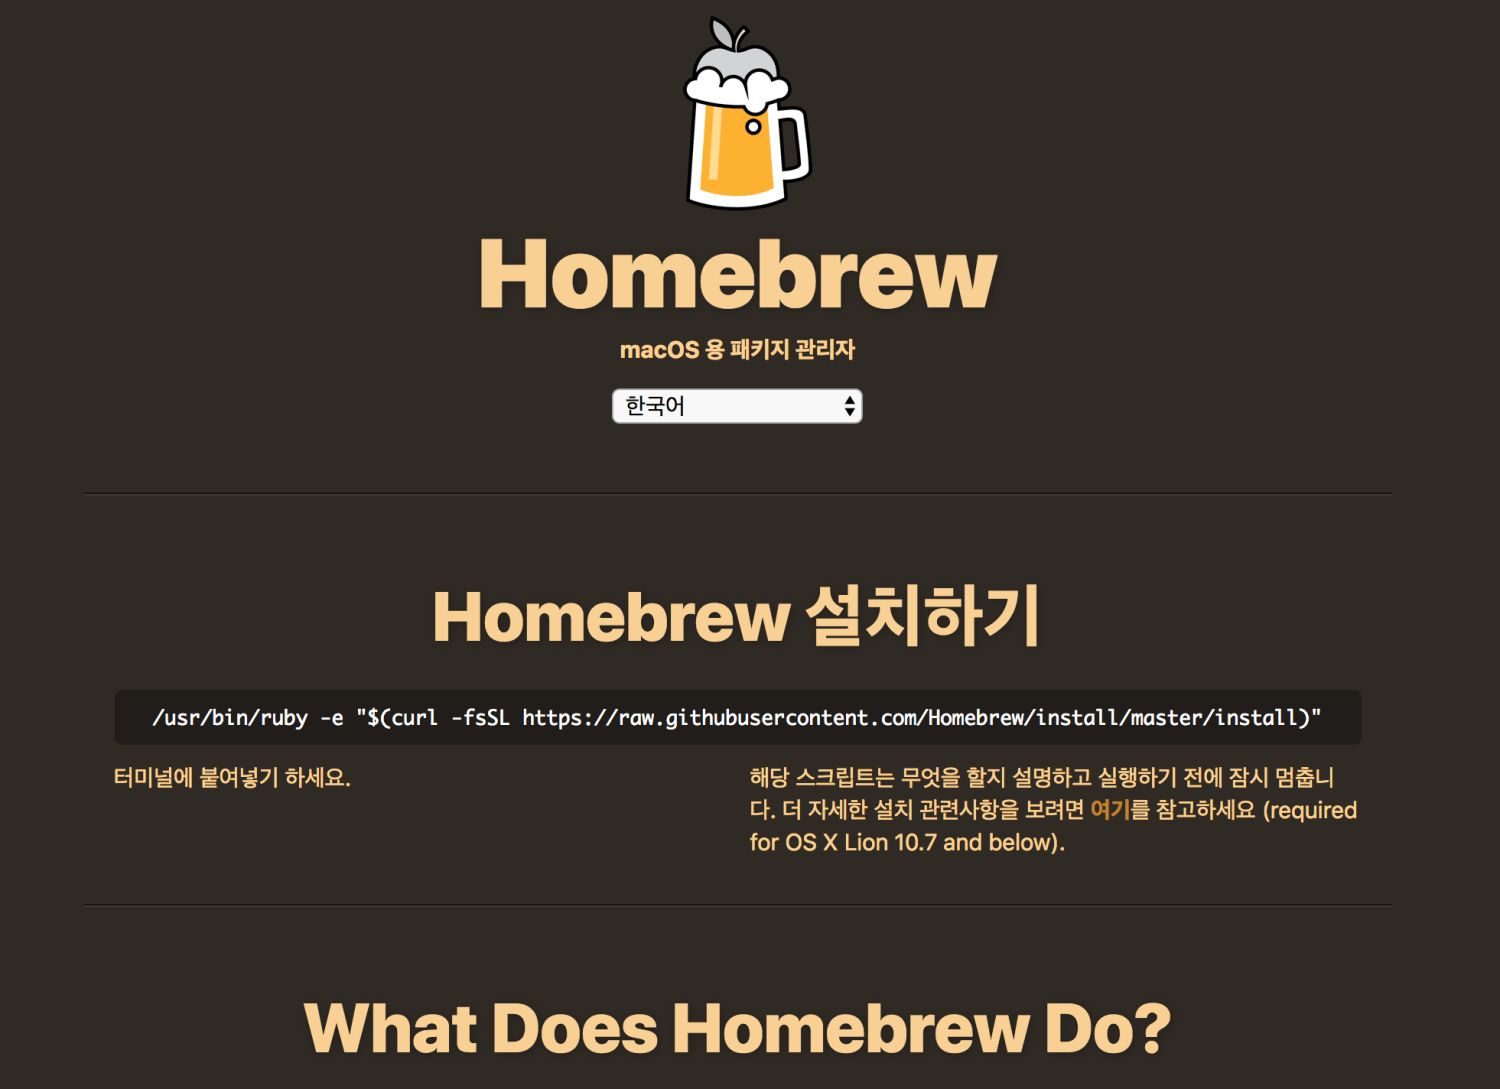 homebrew-img-001.png